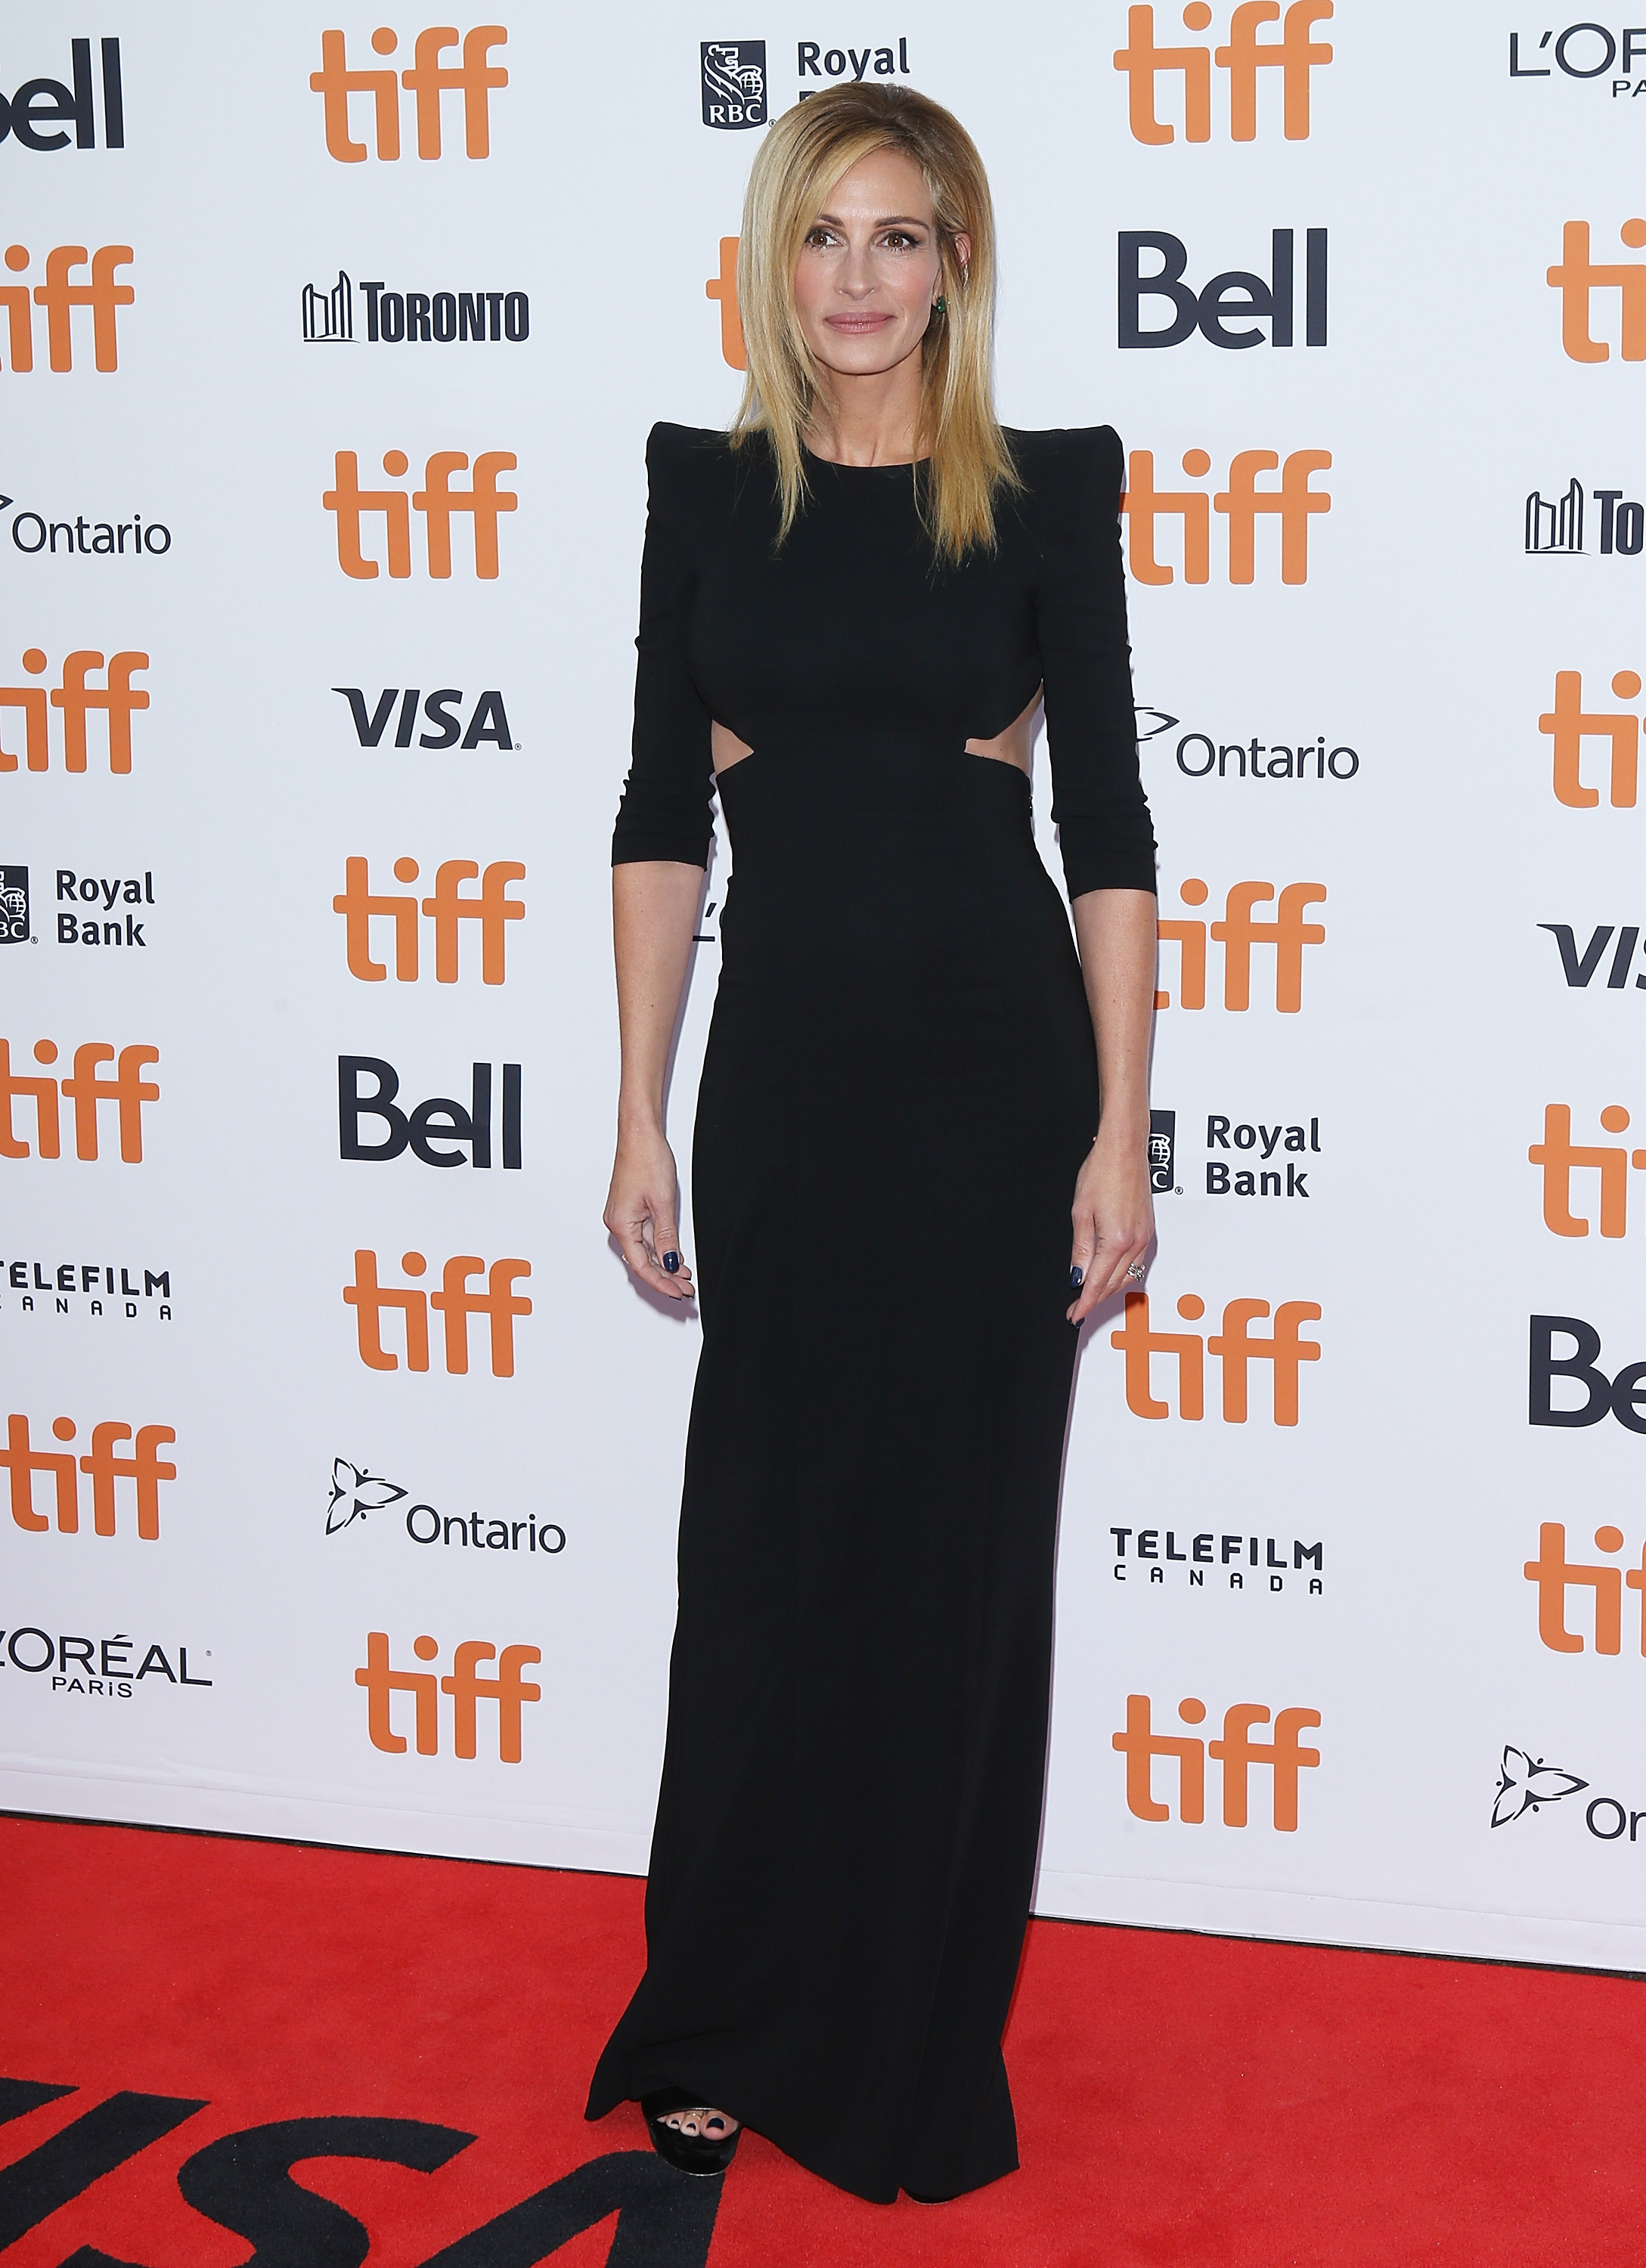 """<p>Step aside Kardashians, it's <a href=""""https://style.nine.com.au/2018/07/31/11/11/red-to-blonde-hair-julia-roberts"""" target=""""_blank"""" title=""""Julia Roberts'"""" draggable=""""false"""">Julia Roberts'</a> time to wow on the red carpet.</p> <p>The actress stepped out for the Toronto Film Festival looking every inch the movie star she is.</p> <p>The 50 year-old wowed in a floor length gown by Canadian designers, Dsquared2. The dress featured exaggerated shoulder pads and cut outs around her waist.</p> <p>Roberts' complimented her look with black Jimmy Choo heels and Lorraine Schwartz jewelry, giving off a classic, yet modern and sleek aesthetic.</p> <p>The <em>Ben is Back</em> star isn't the only A-lister to step it up in the style stakes at the festival.</p> <p><a href=""""https://style.nine.com.au/2018/05/28/16/56/lady-gaga-outfit-changes-three"""" target=""""_blank"""" title=""""Lady Gaga """" draggable=""""false"""">Lady Gaga </a>wore a dramatic evening gown byArmani Privé while chunky jewels from Chopard added even more sparkle to her 'Old Hollywood' glam look.</p> <p>Click through to see all the  highlights from the Toronto Film Festival red carpet.</p>"""